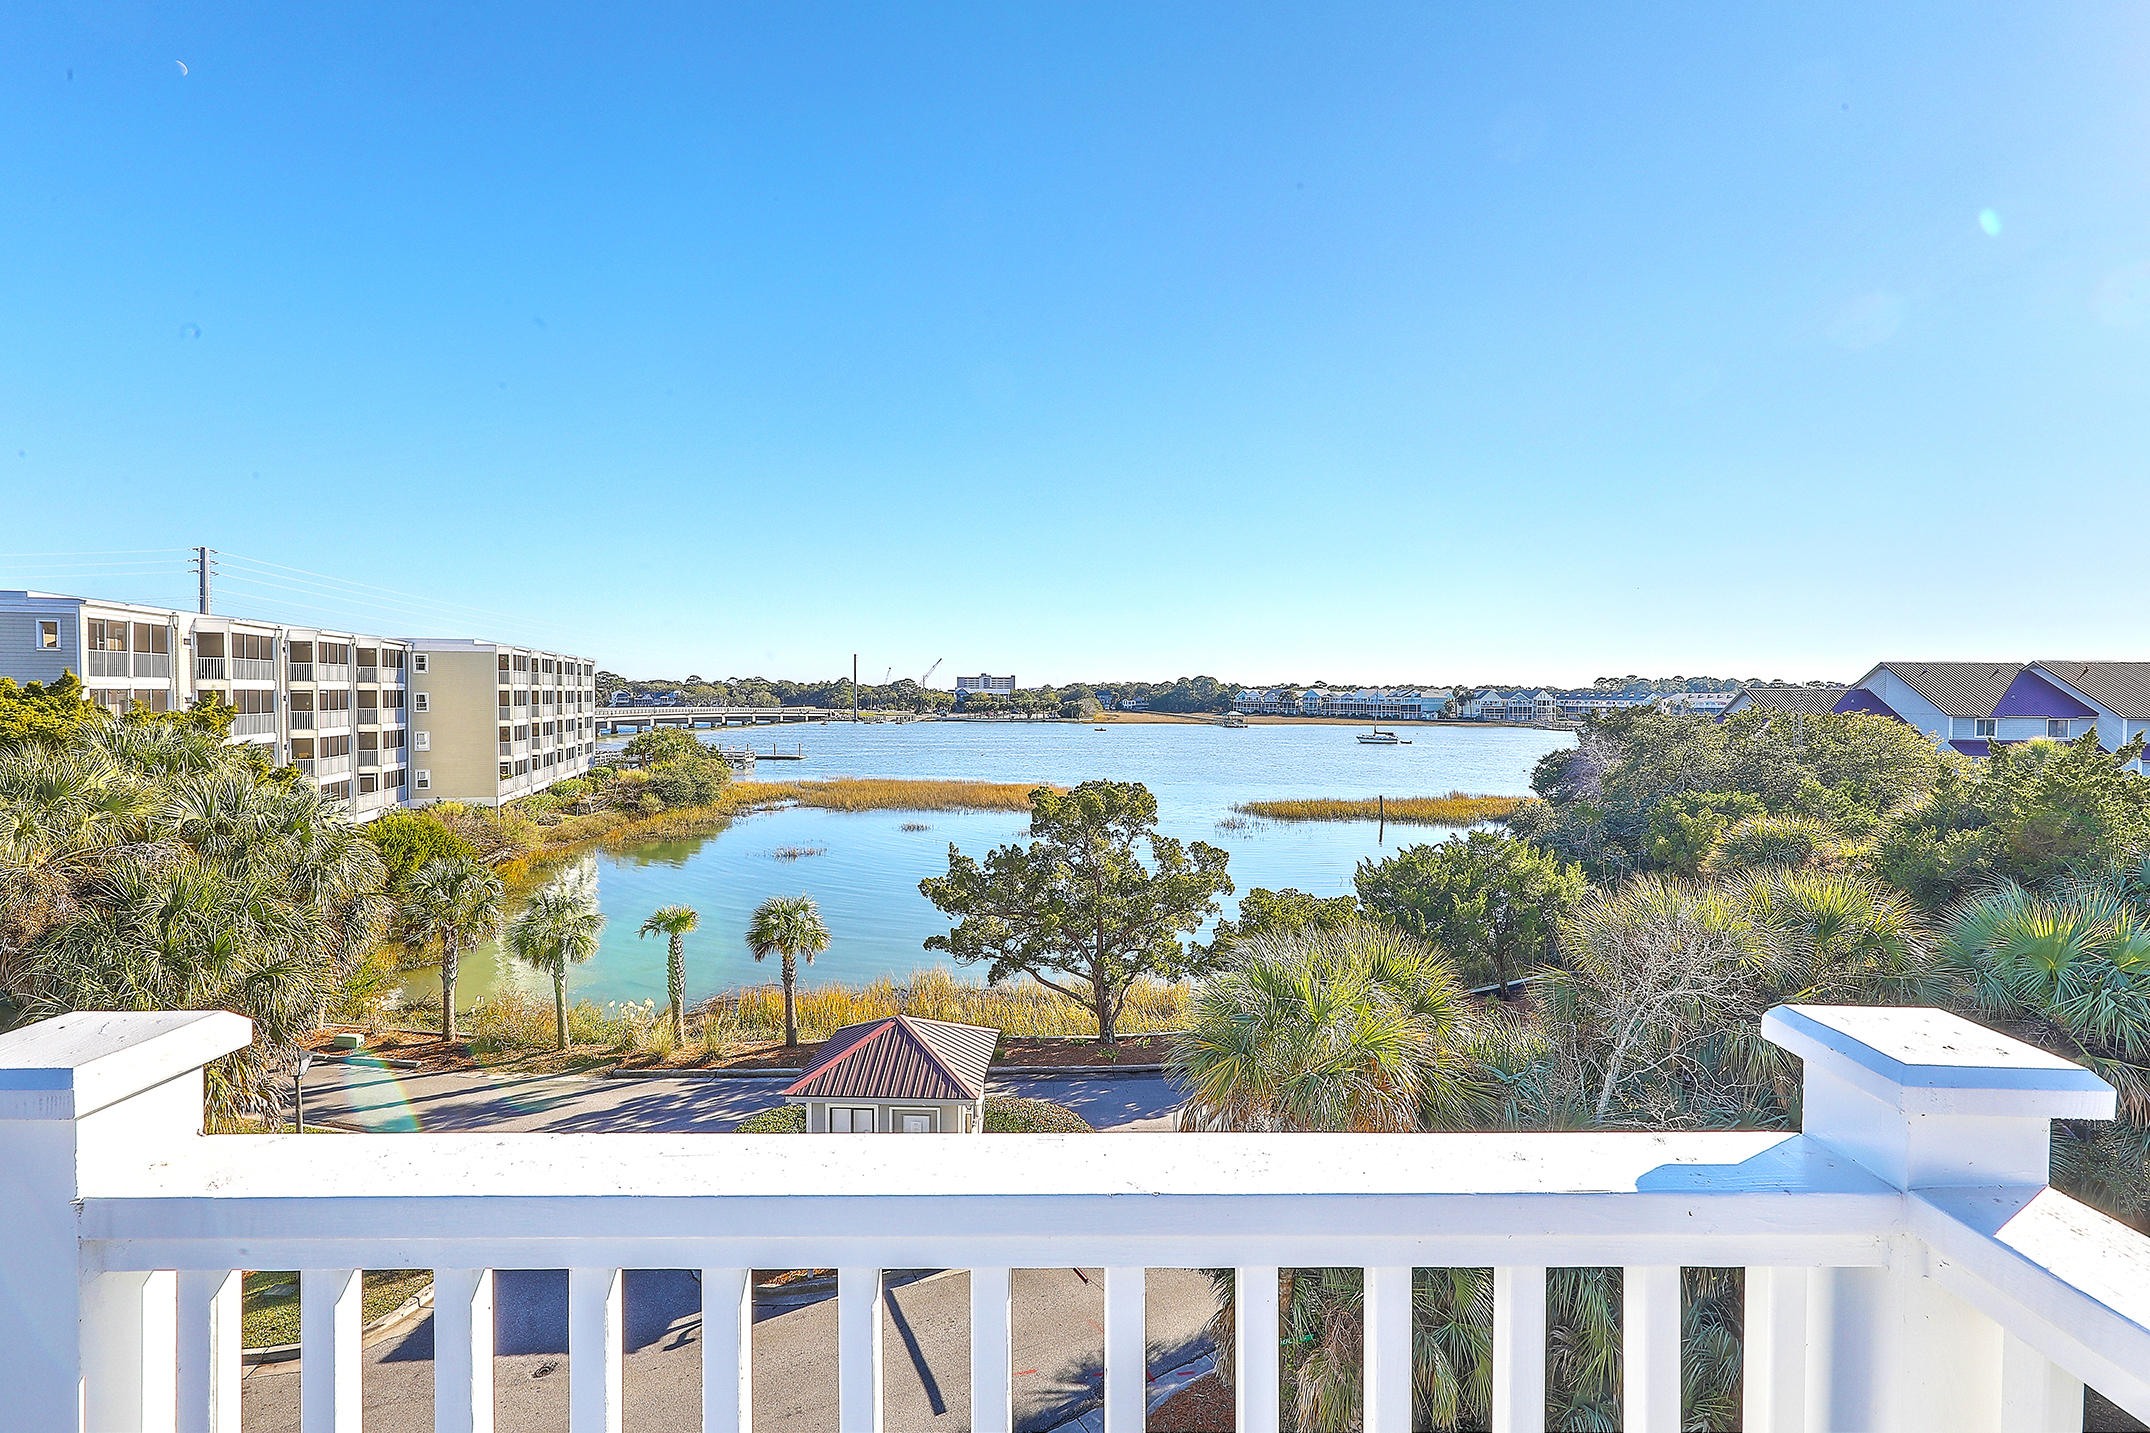 Mariners Cay Homes For Sale - 1004 Mariners Cay, Folly Beach, SC - 15